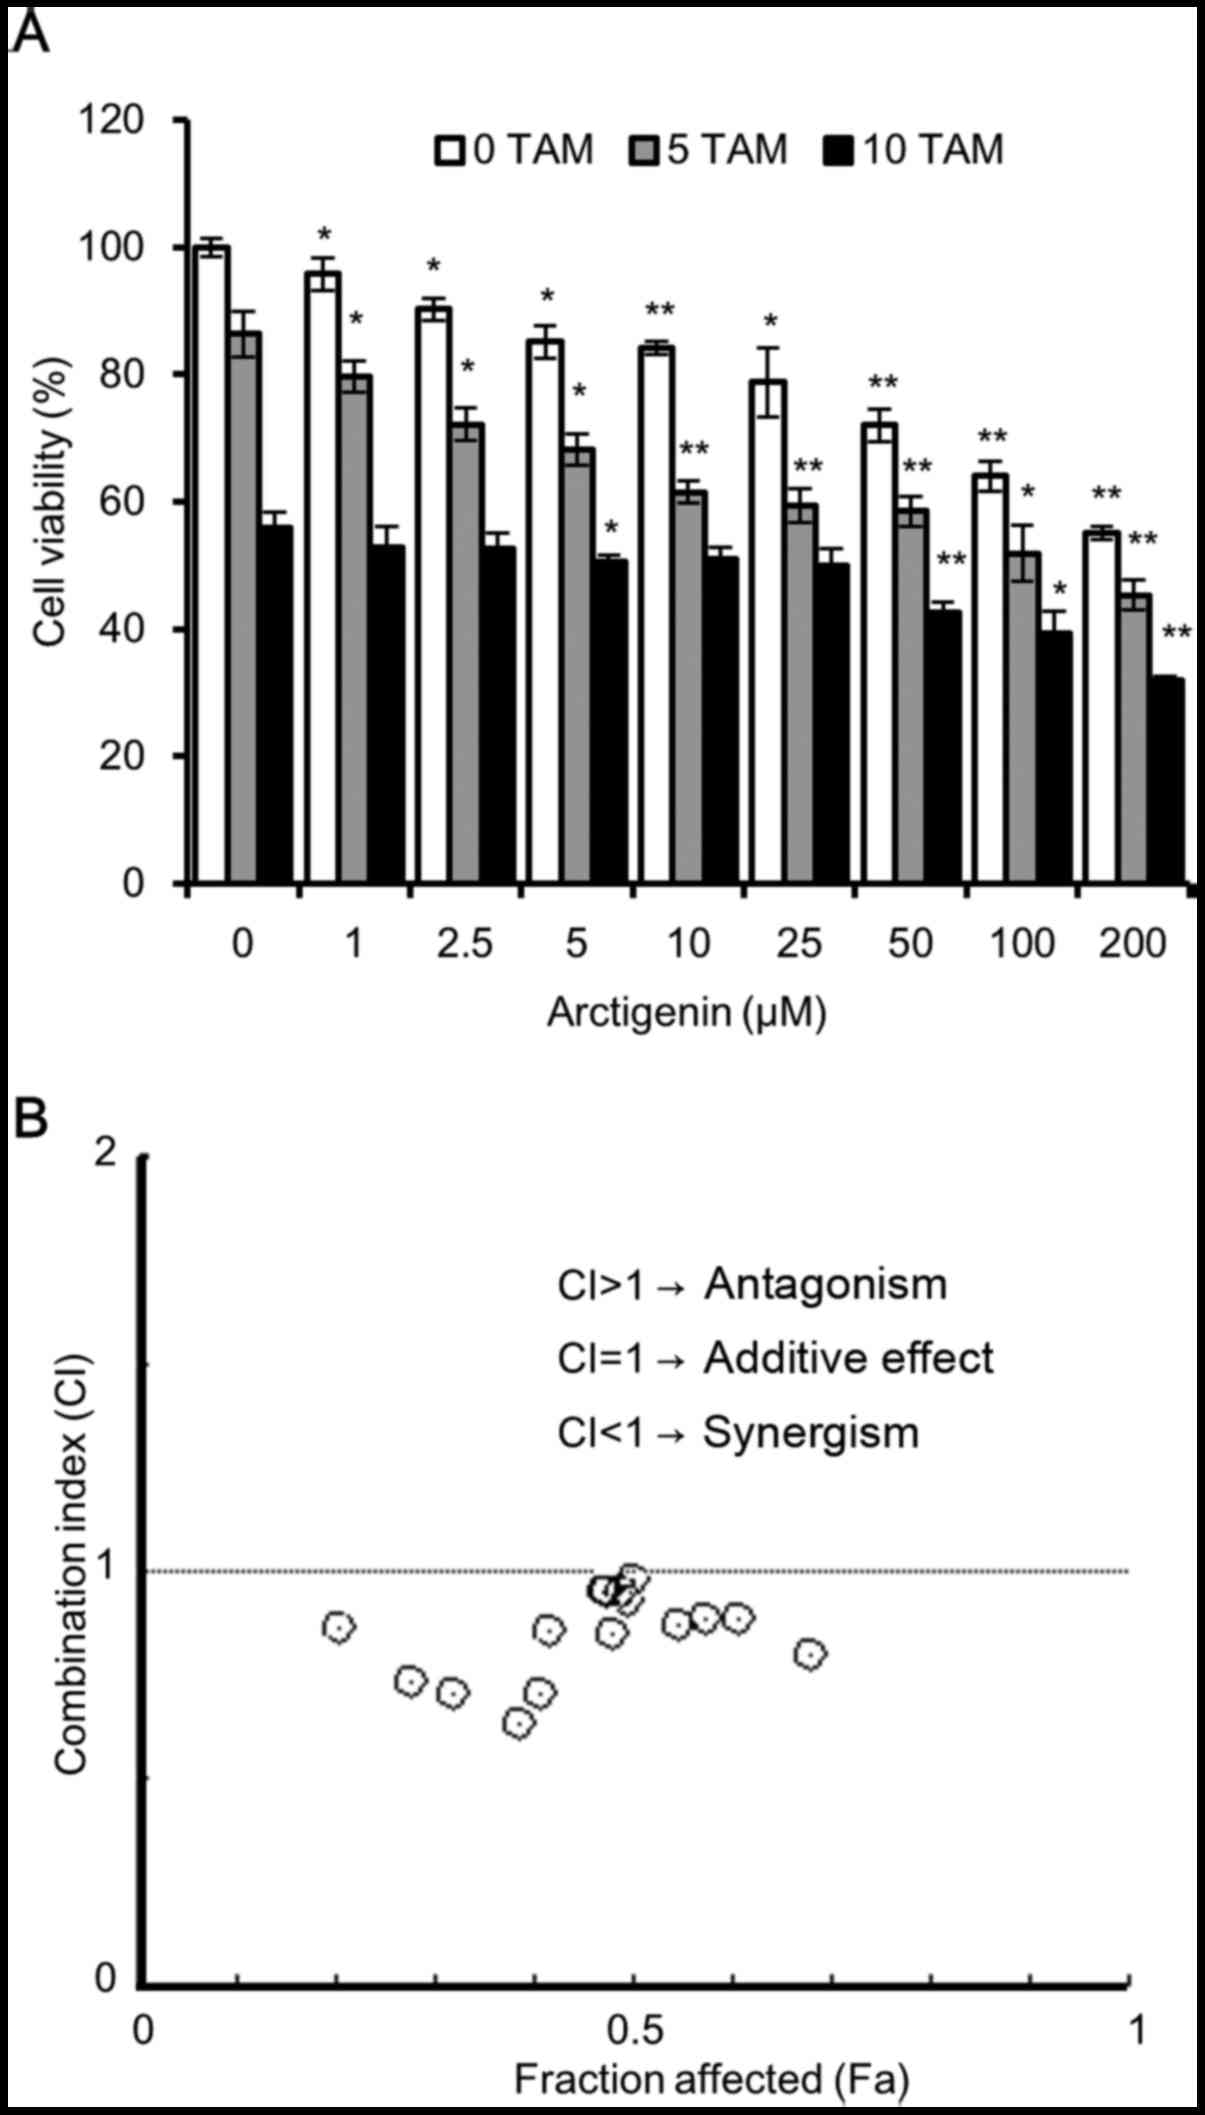 Arctigenin Inhibits The Activation Of The Mtor Pathway Resulting In Autophagic Cell Death And Decreased Er Expression In Er Positive Human Breast Cancer Cells